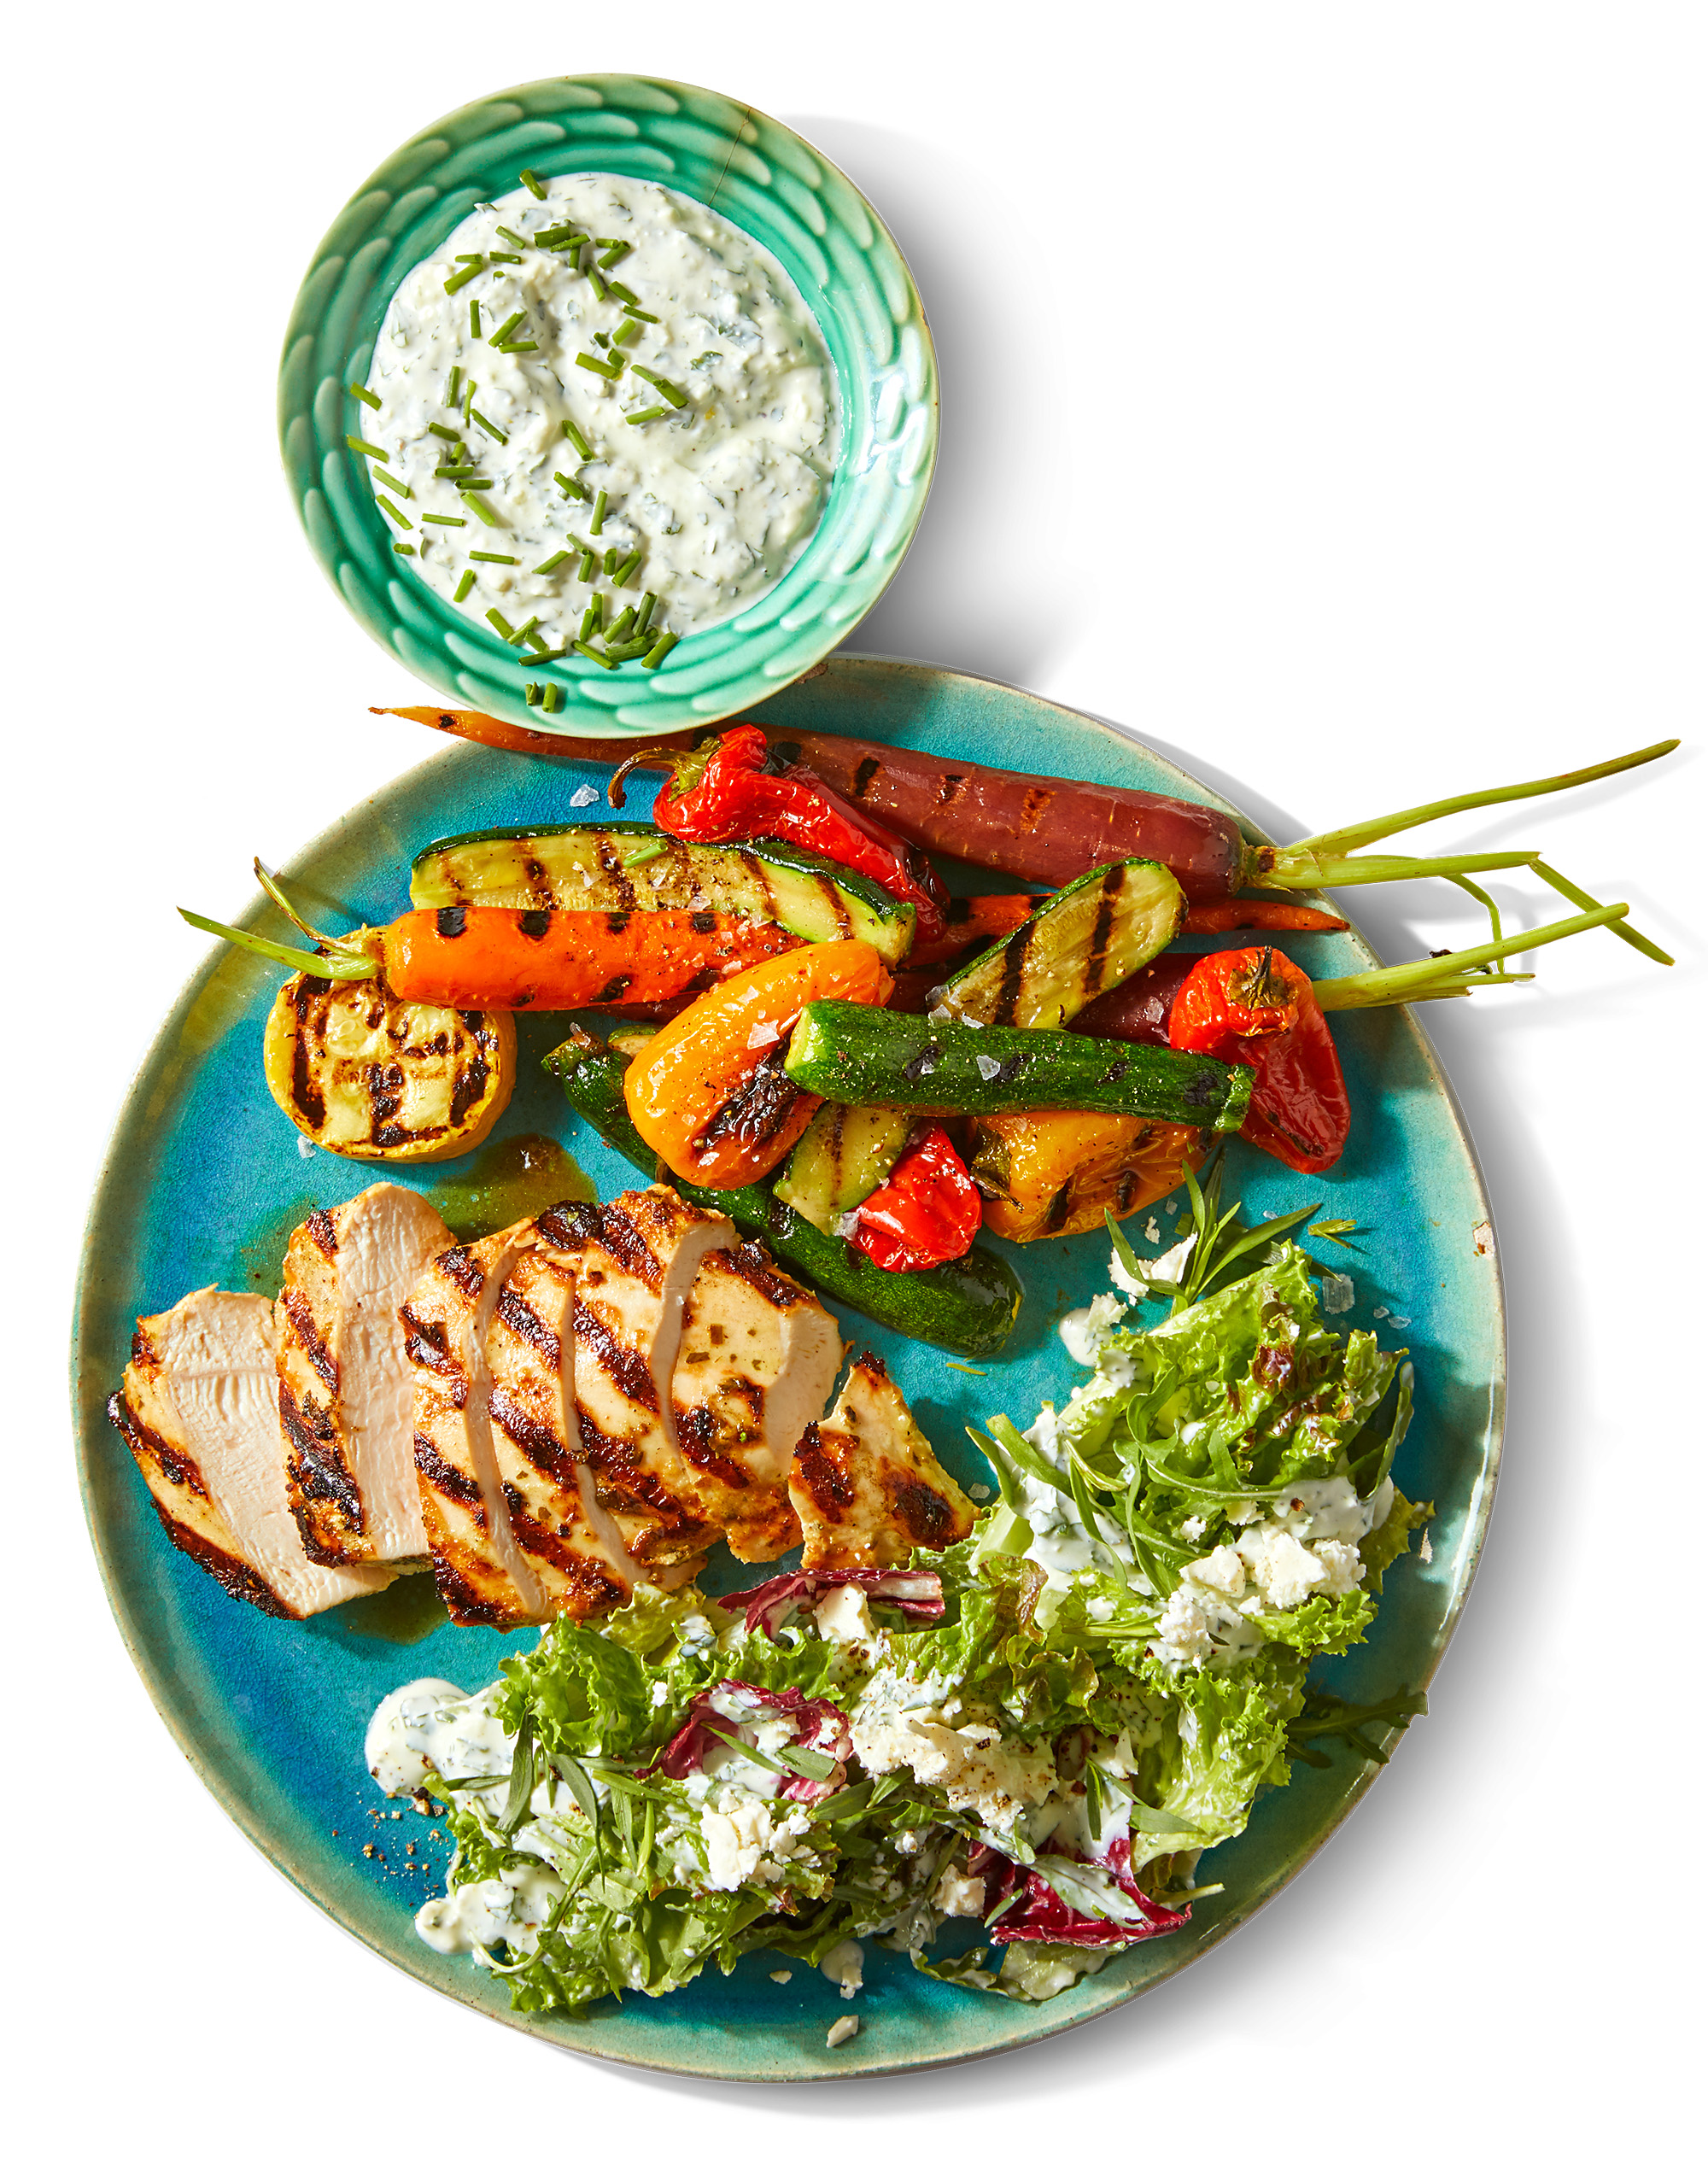 bowl of yogurt-feta dip plate of meat veggies